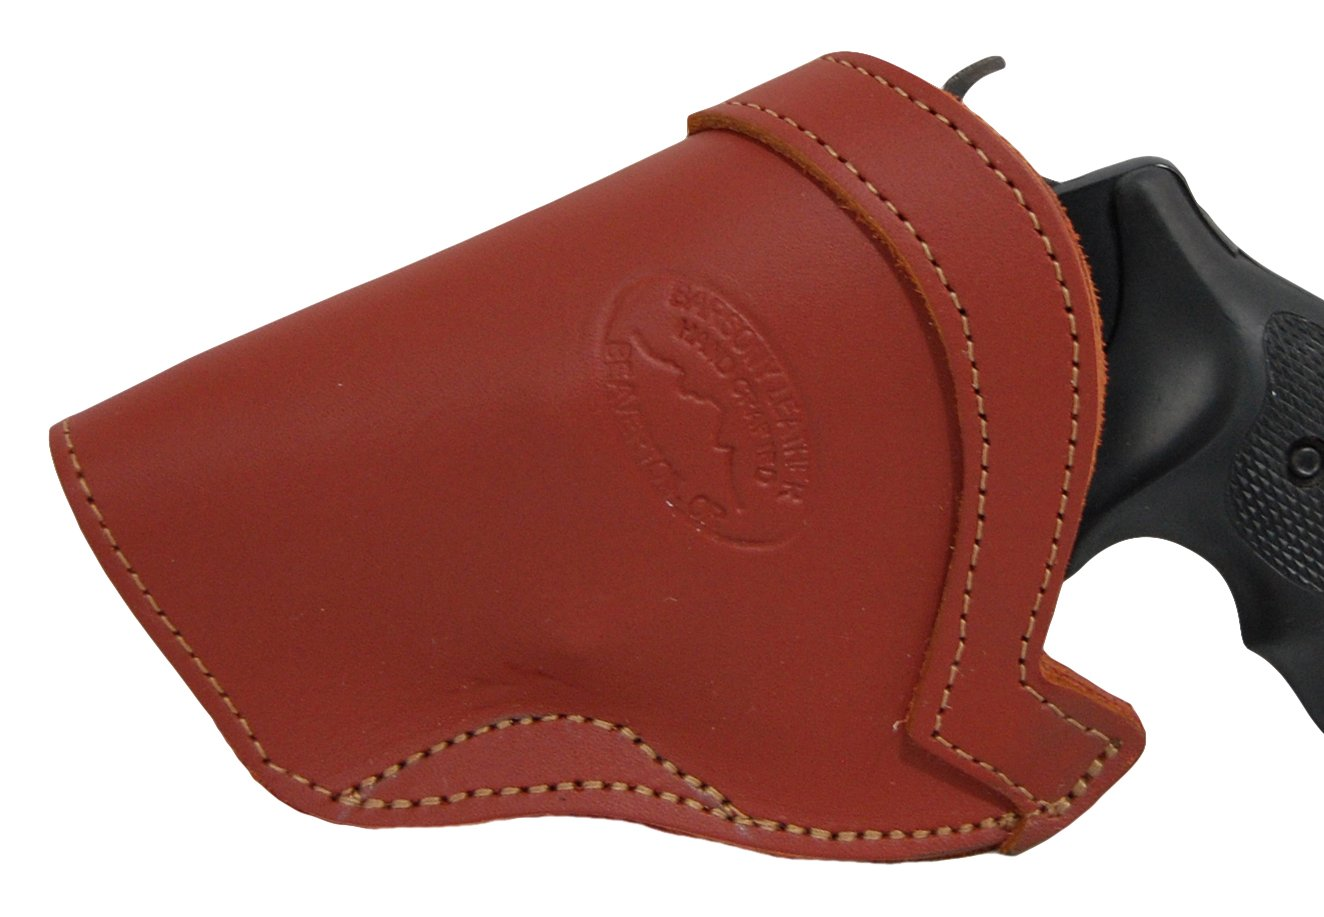 Barsony Holsters and Belts Left Hand Holster for TAURUS 605; 650, Burgundy, 2 2 Barsony Holsters & Belts 68-8BU_left_TAURUS 605; 650